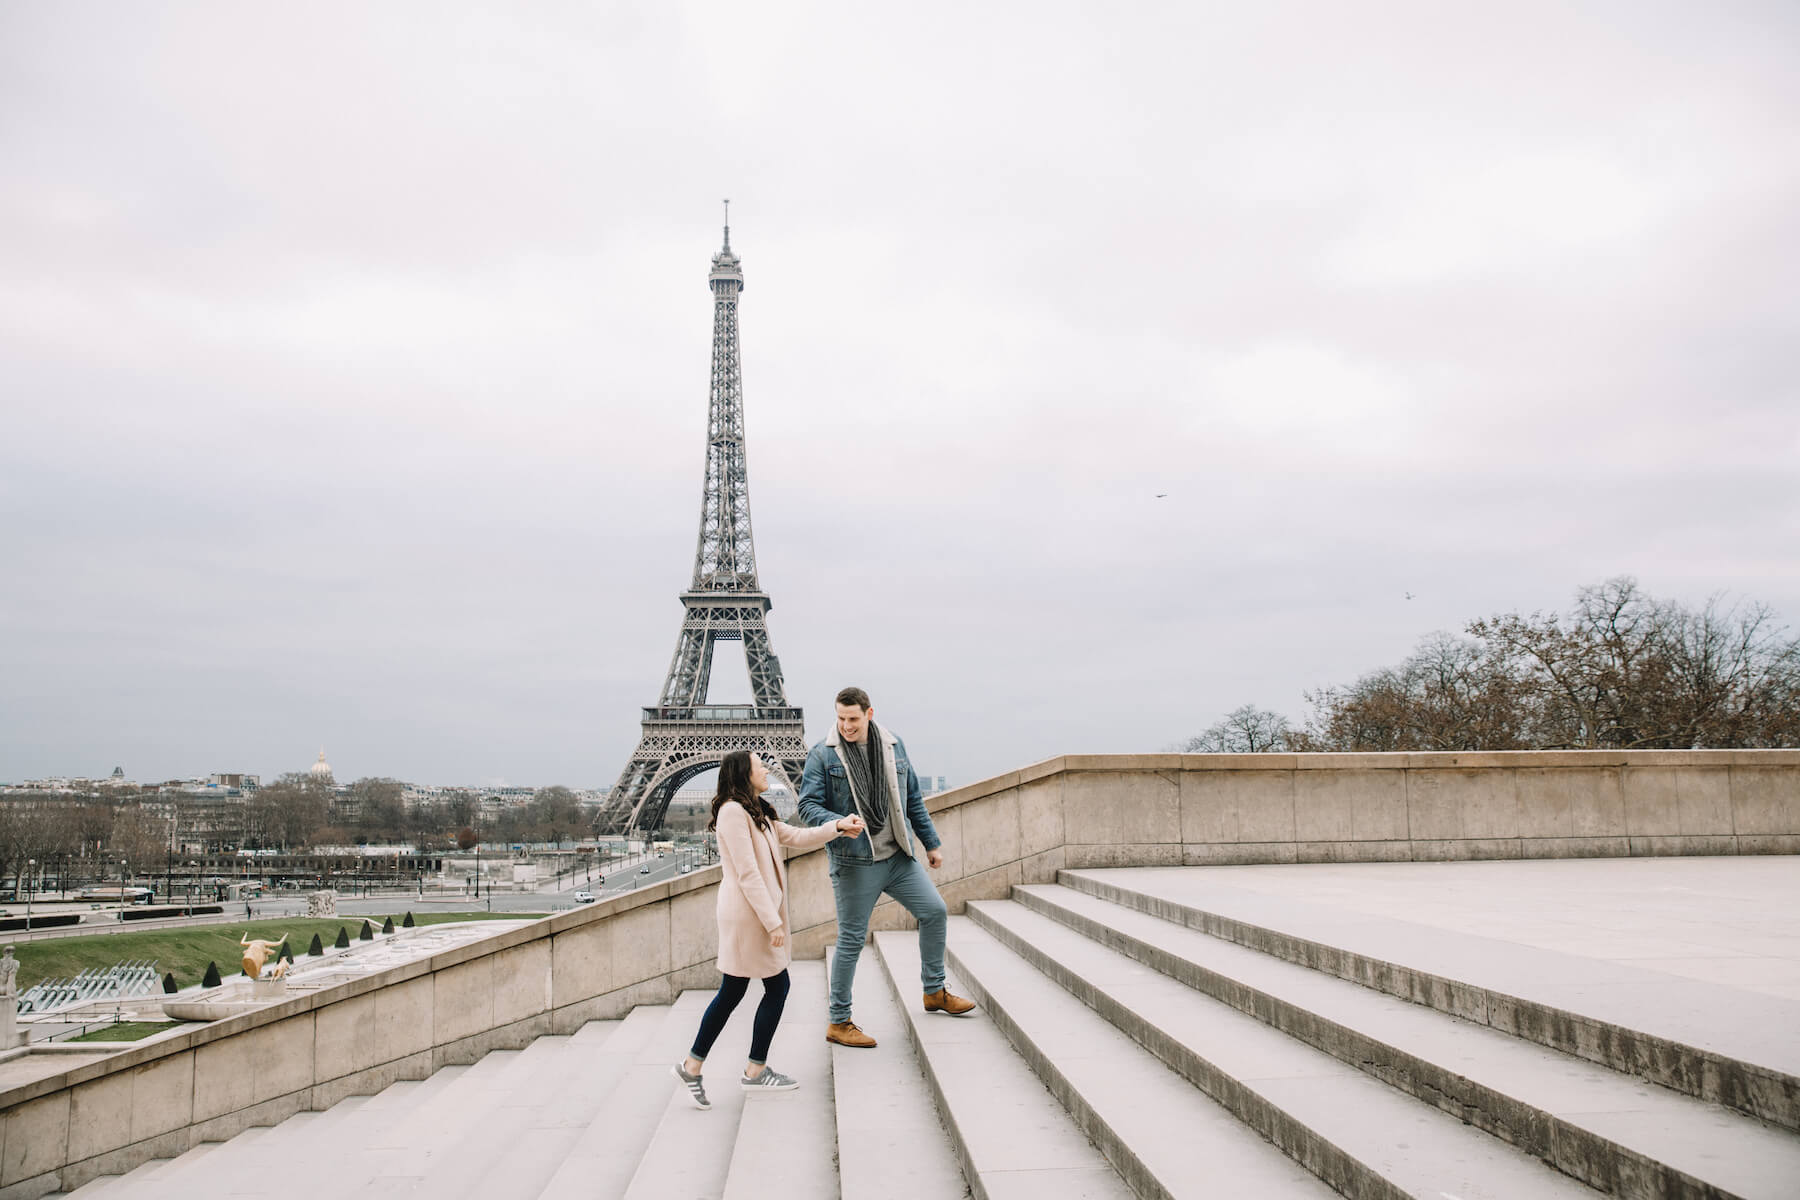 A man walking up stairs with a woman near the Eiffel tower in Paris, France